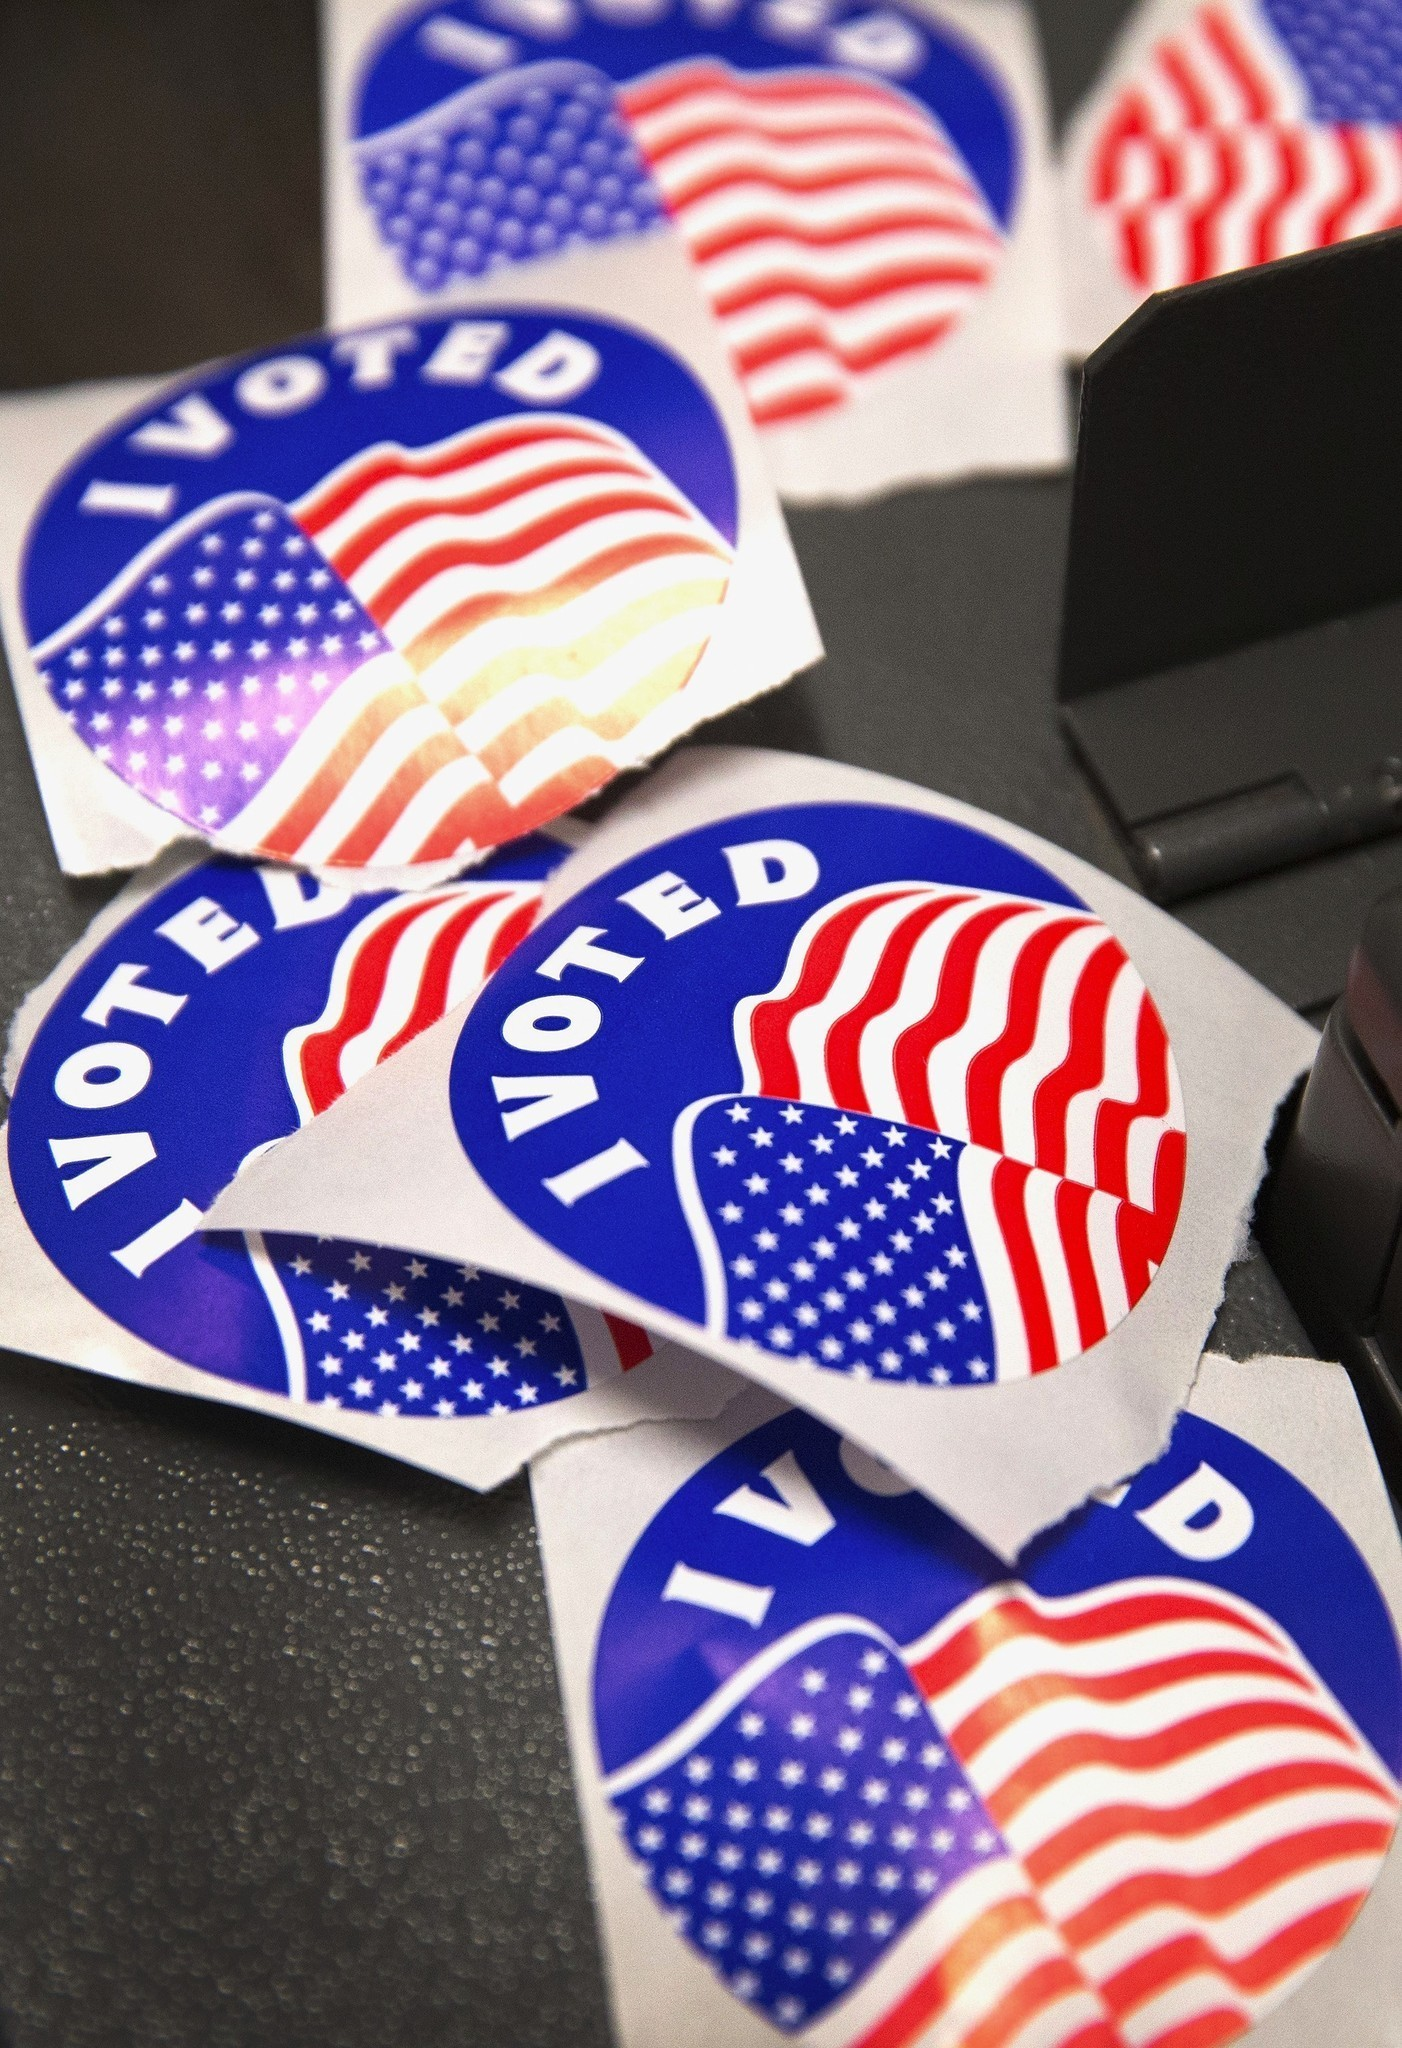 election day - photo #14